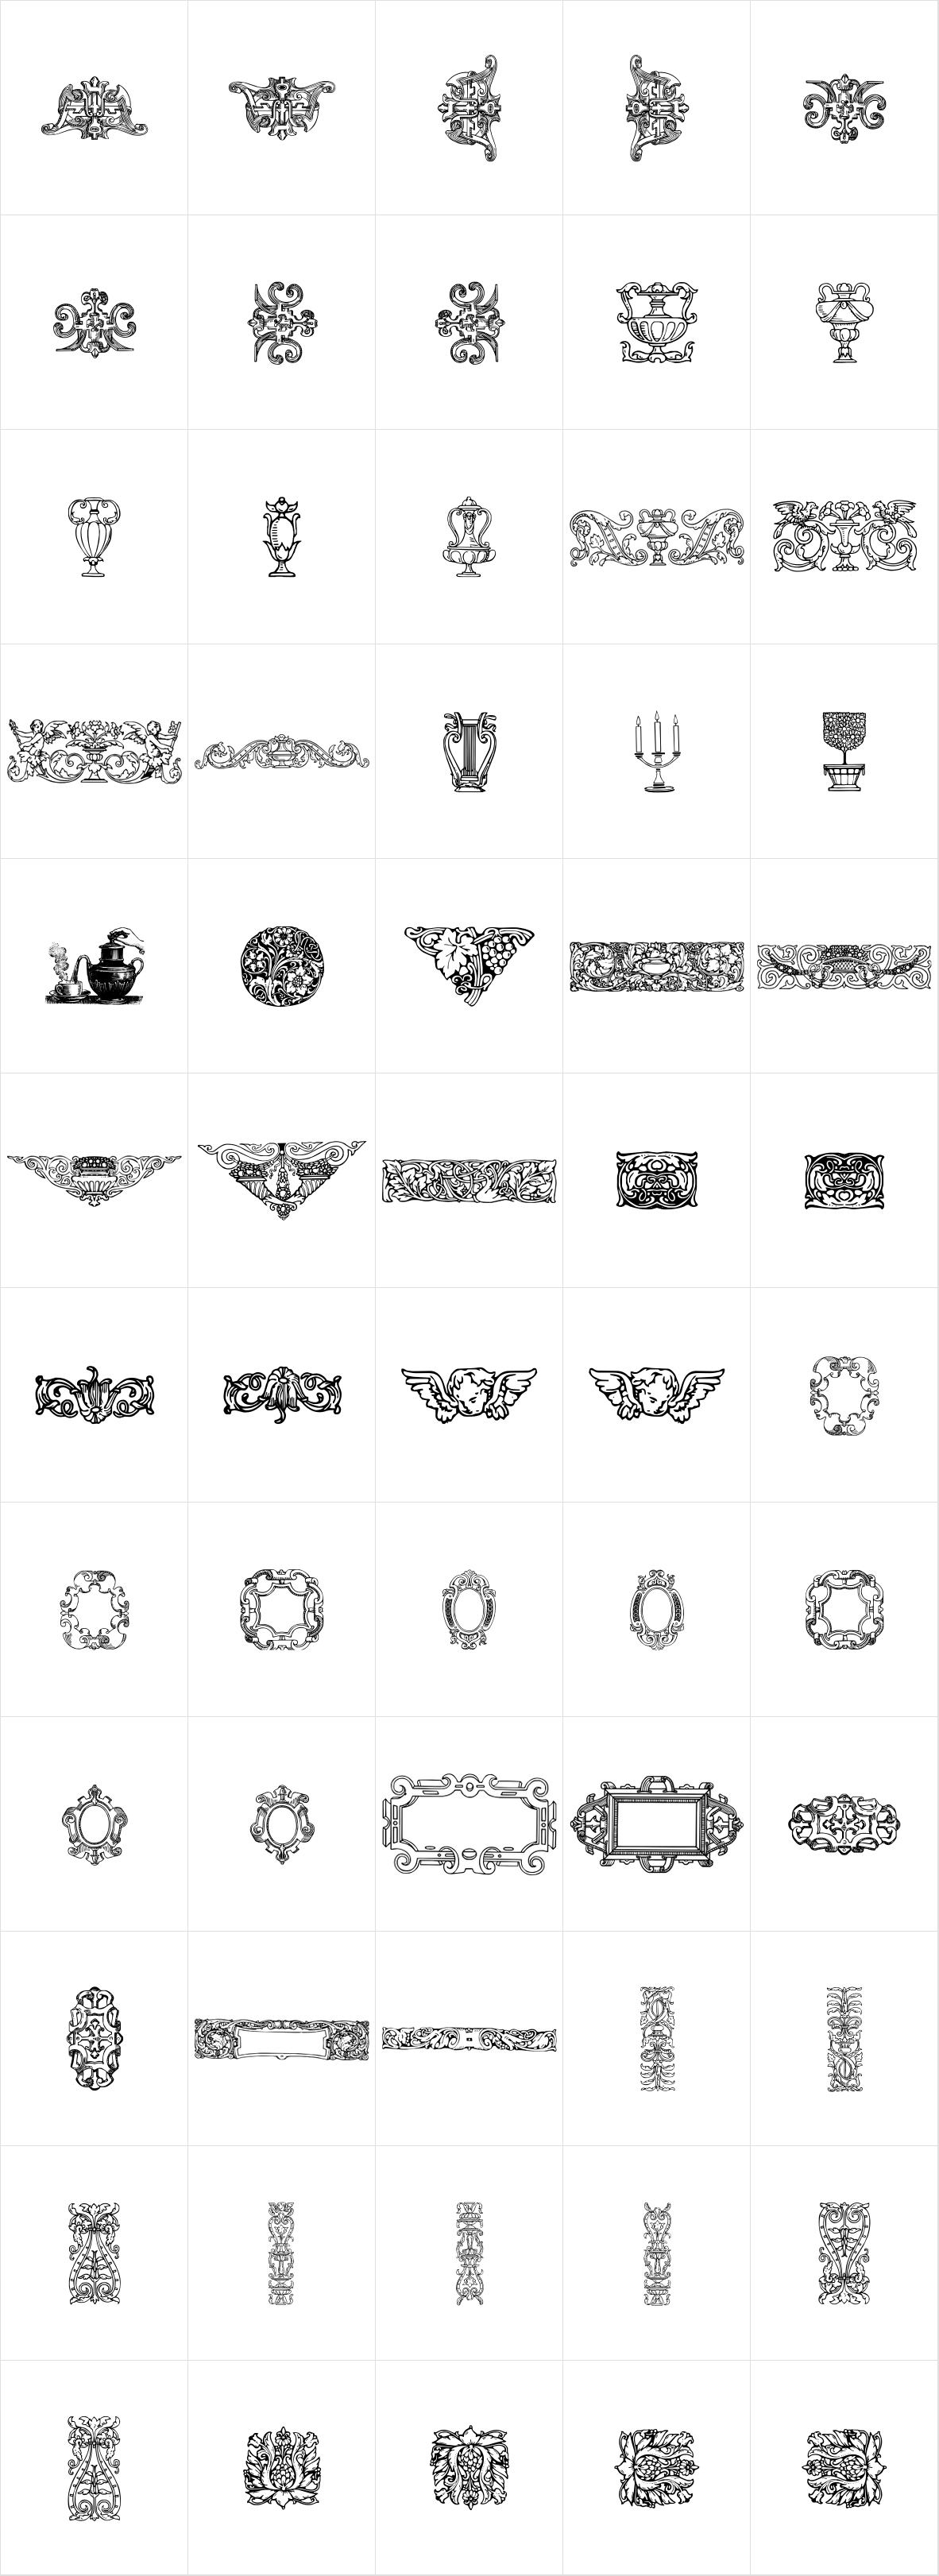 Mortised Ornaments